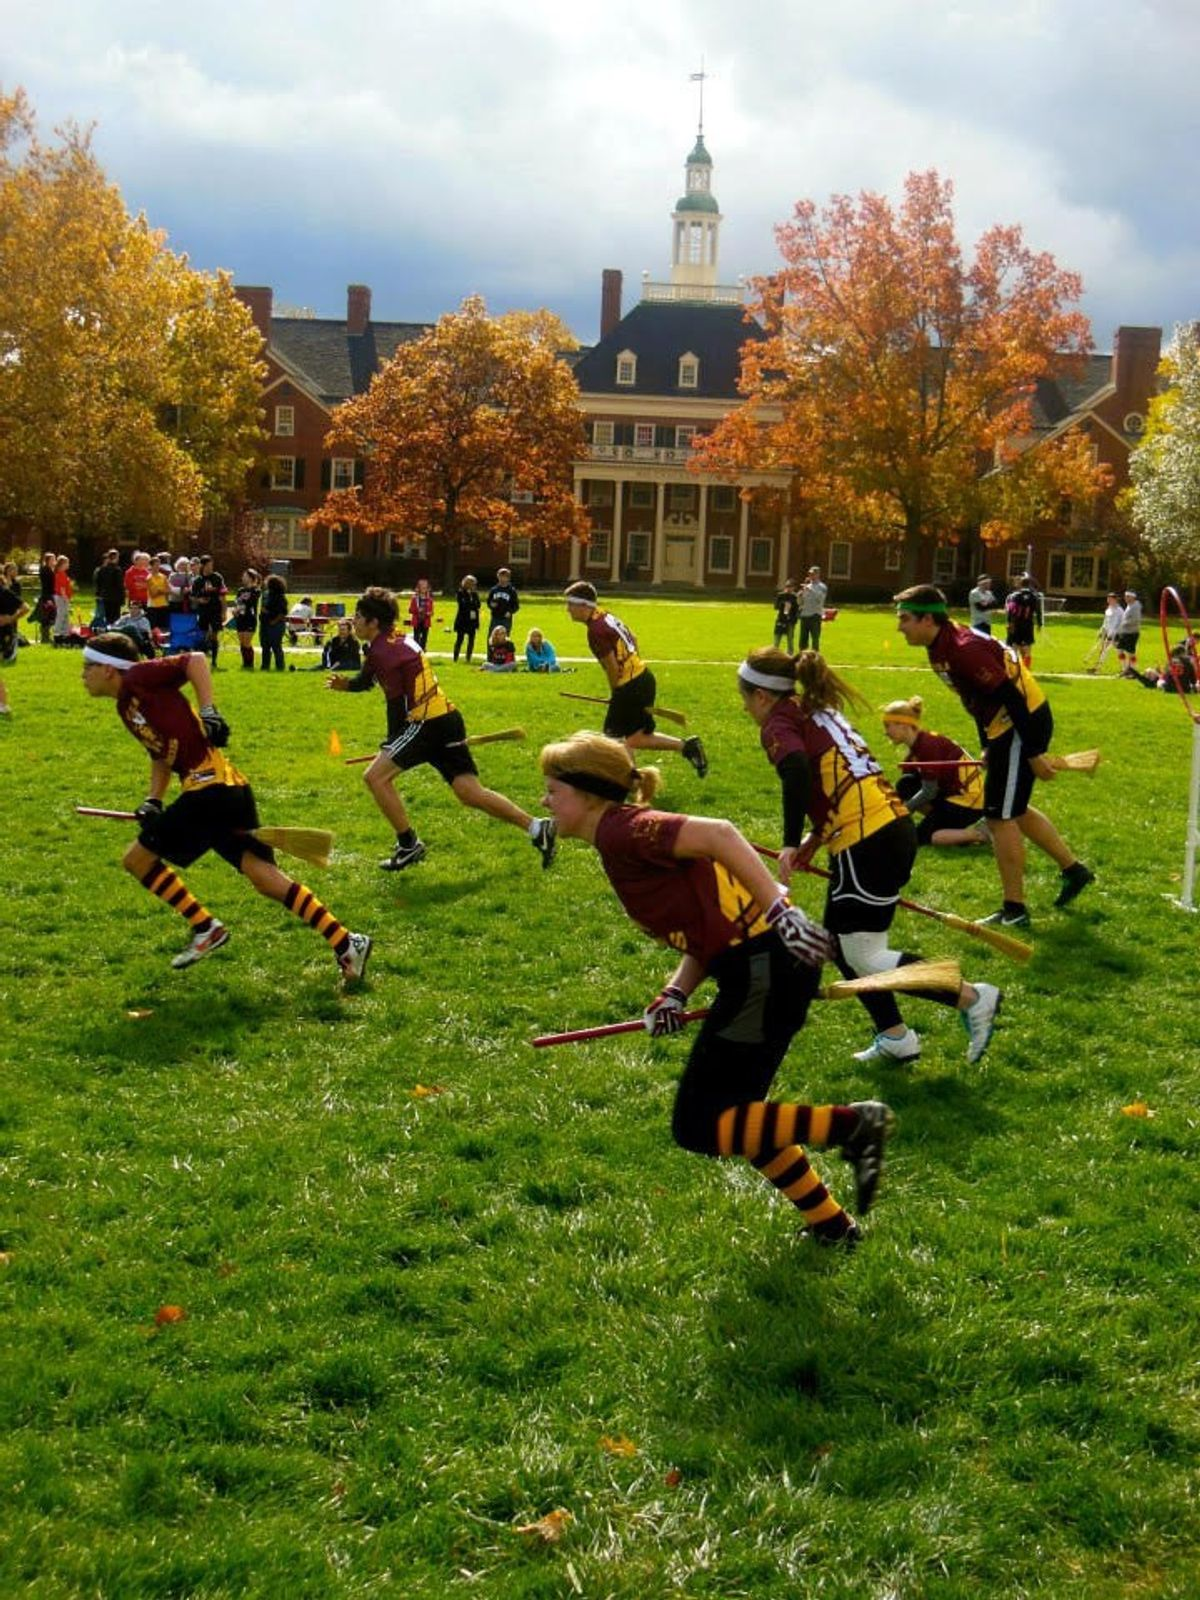 Quidditch: You Better Believe It